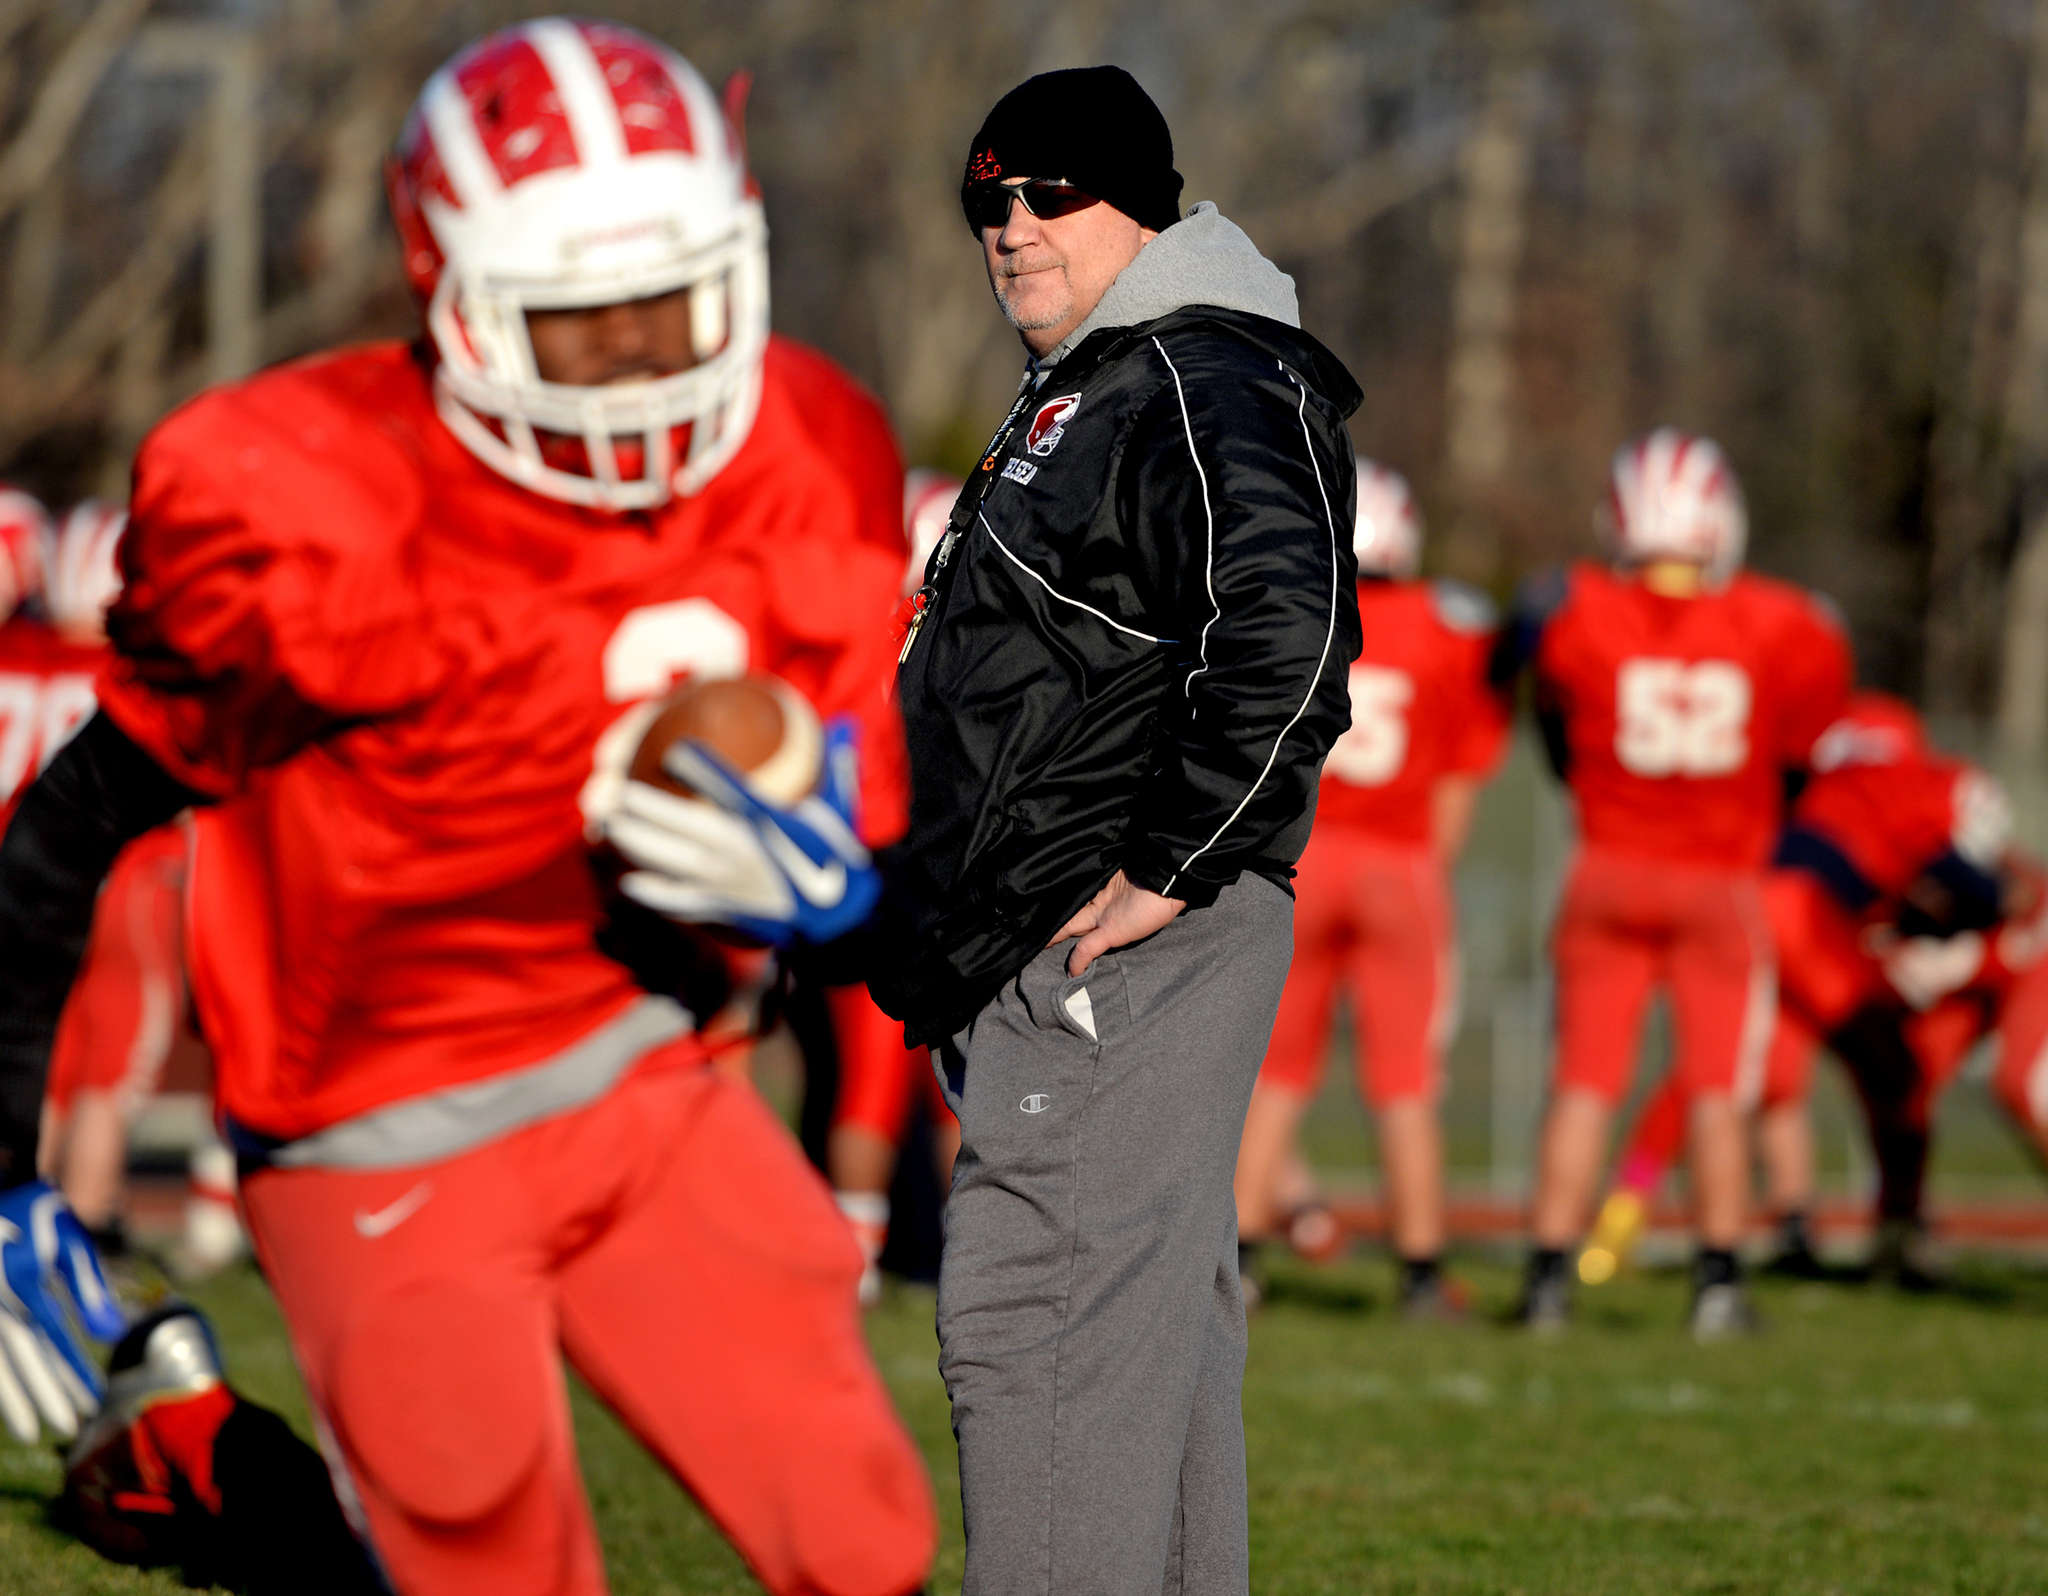 Delsea´s Sal Marchese is only the second head coach in the 56-year history of the school´s football program, which began in 1960.